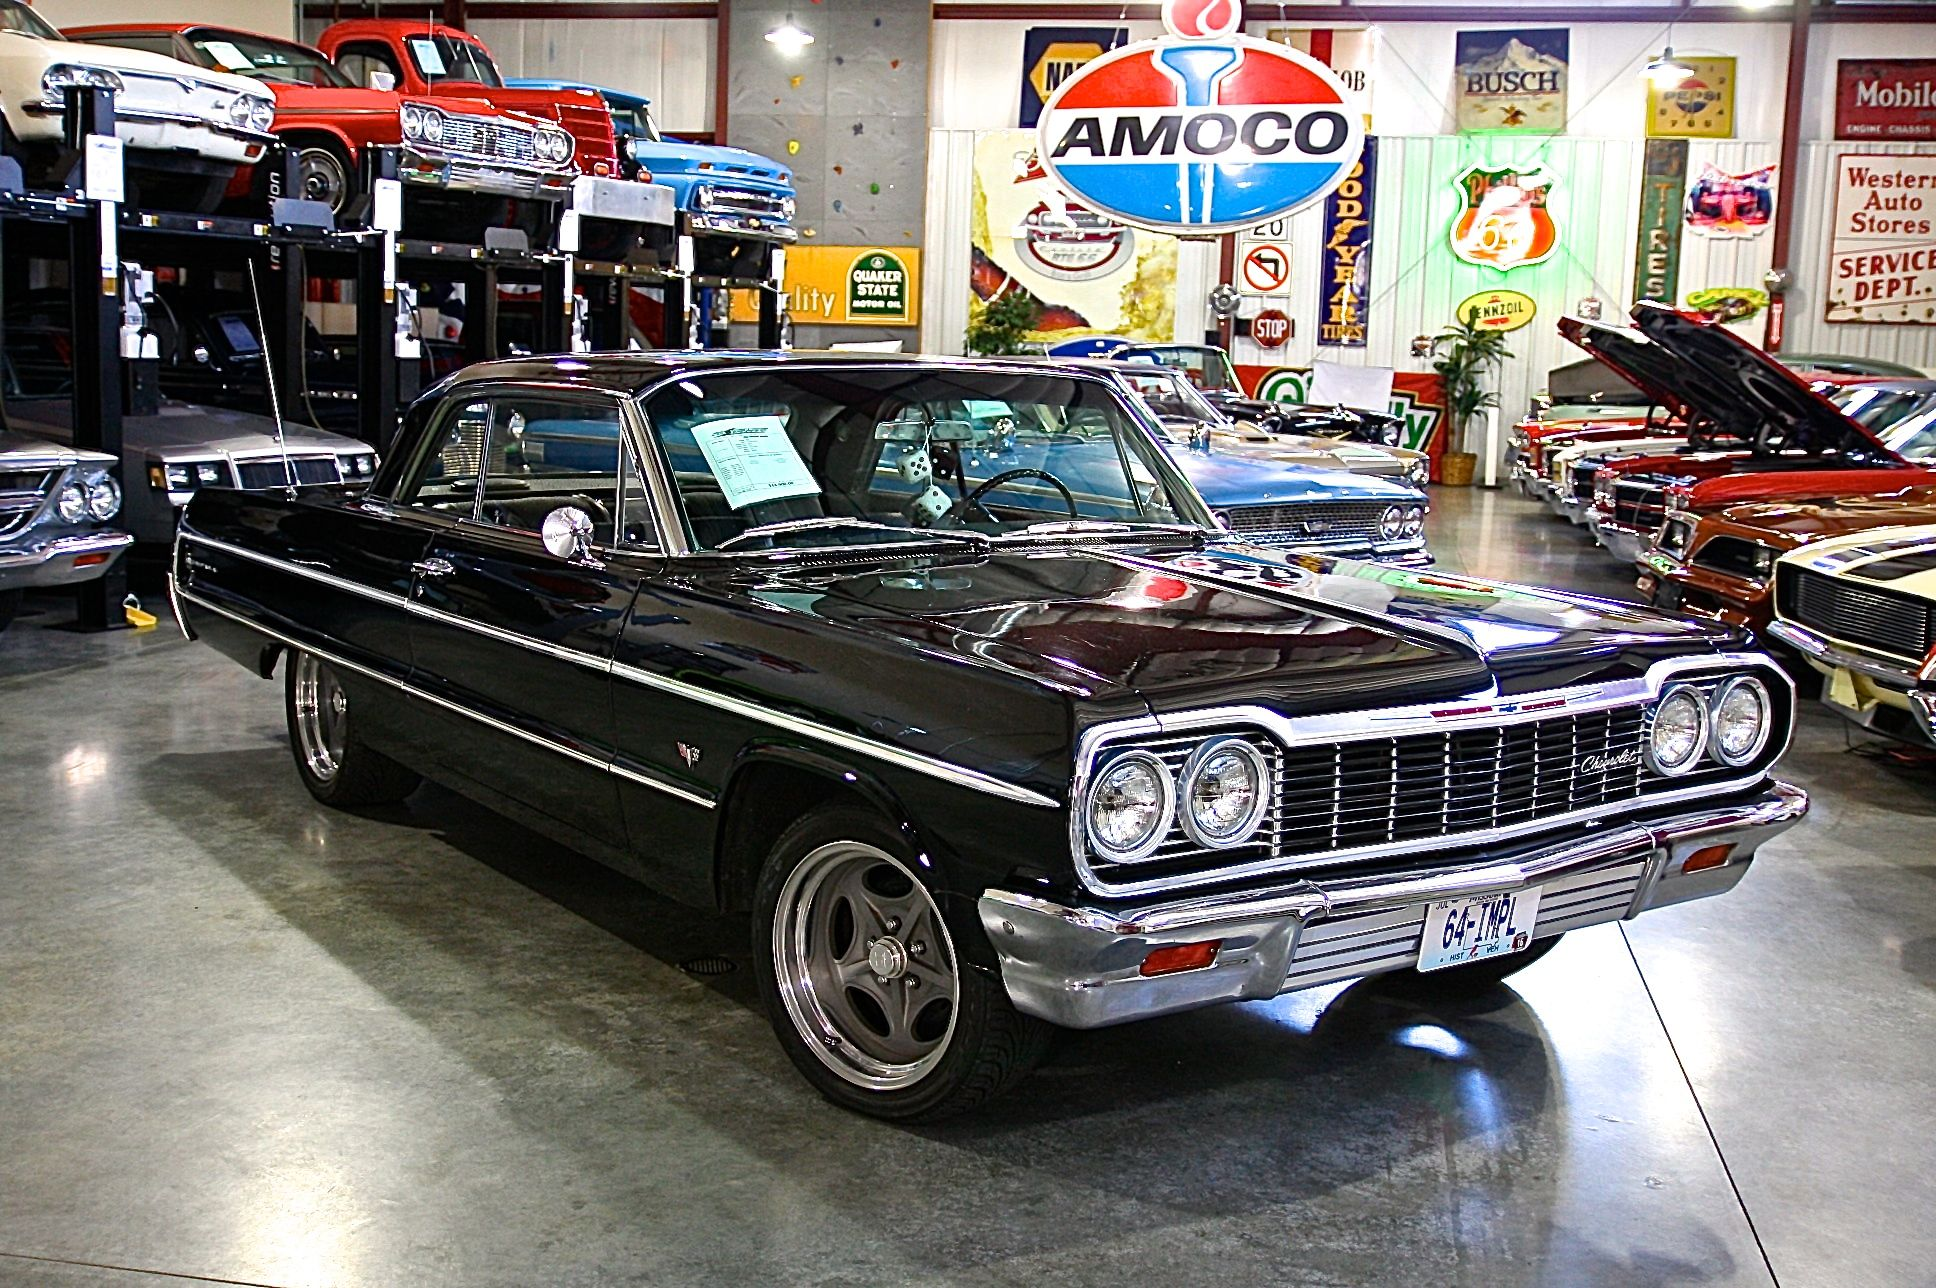 Cars and more chevy impala chevy impalas vehicles drag racing racing - Find This Pin And More On Chevy